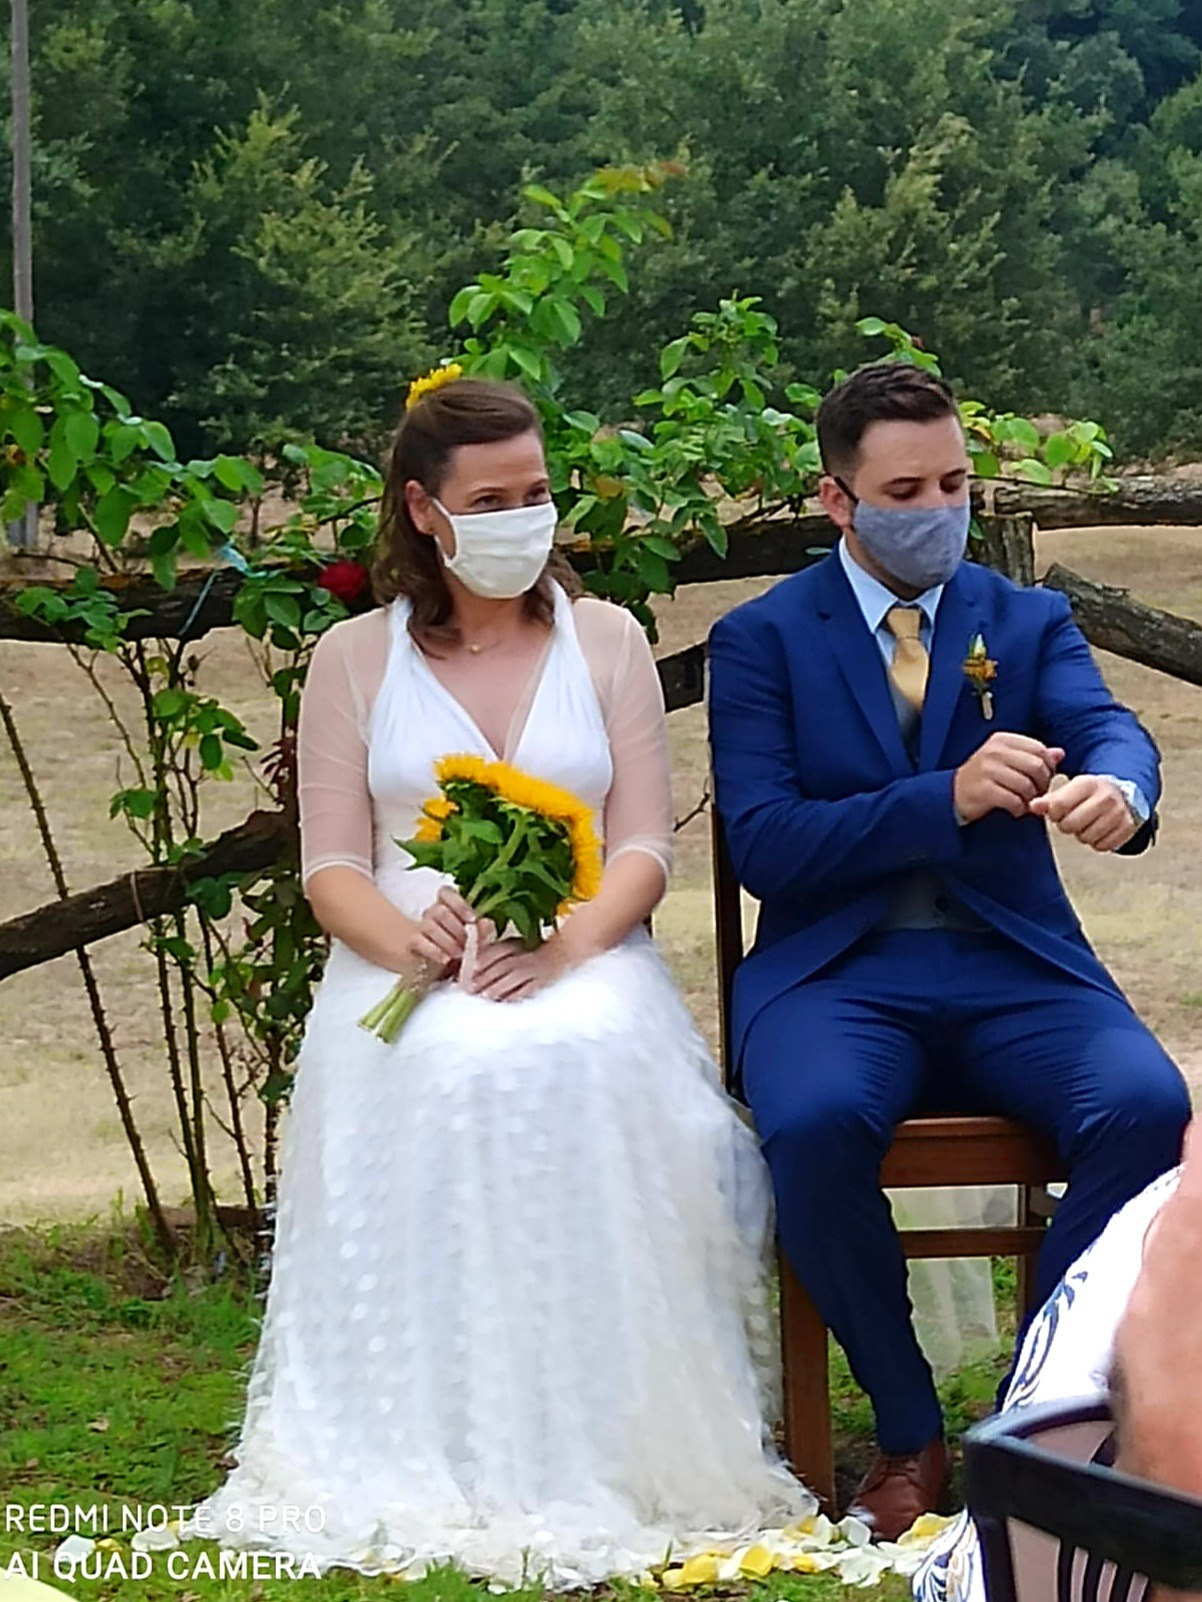 Real wedding during covid, bride wears a Mimètik's face mask